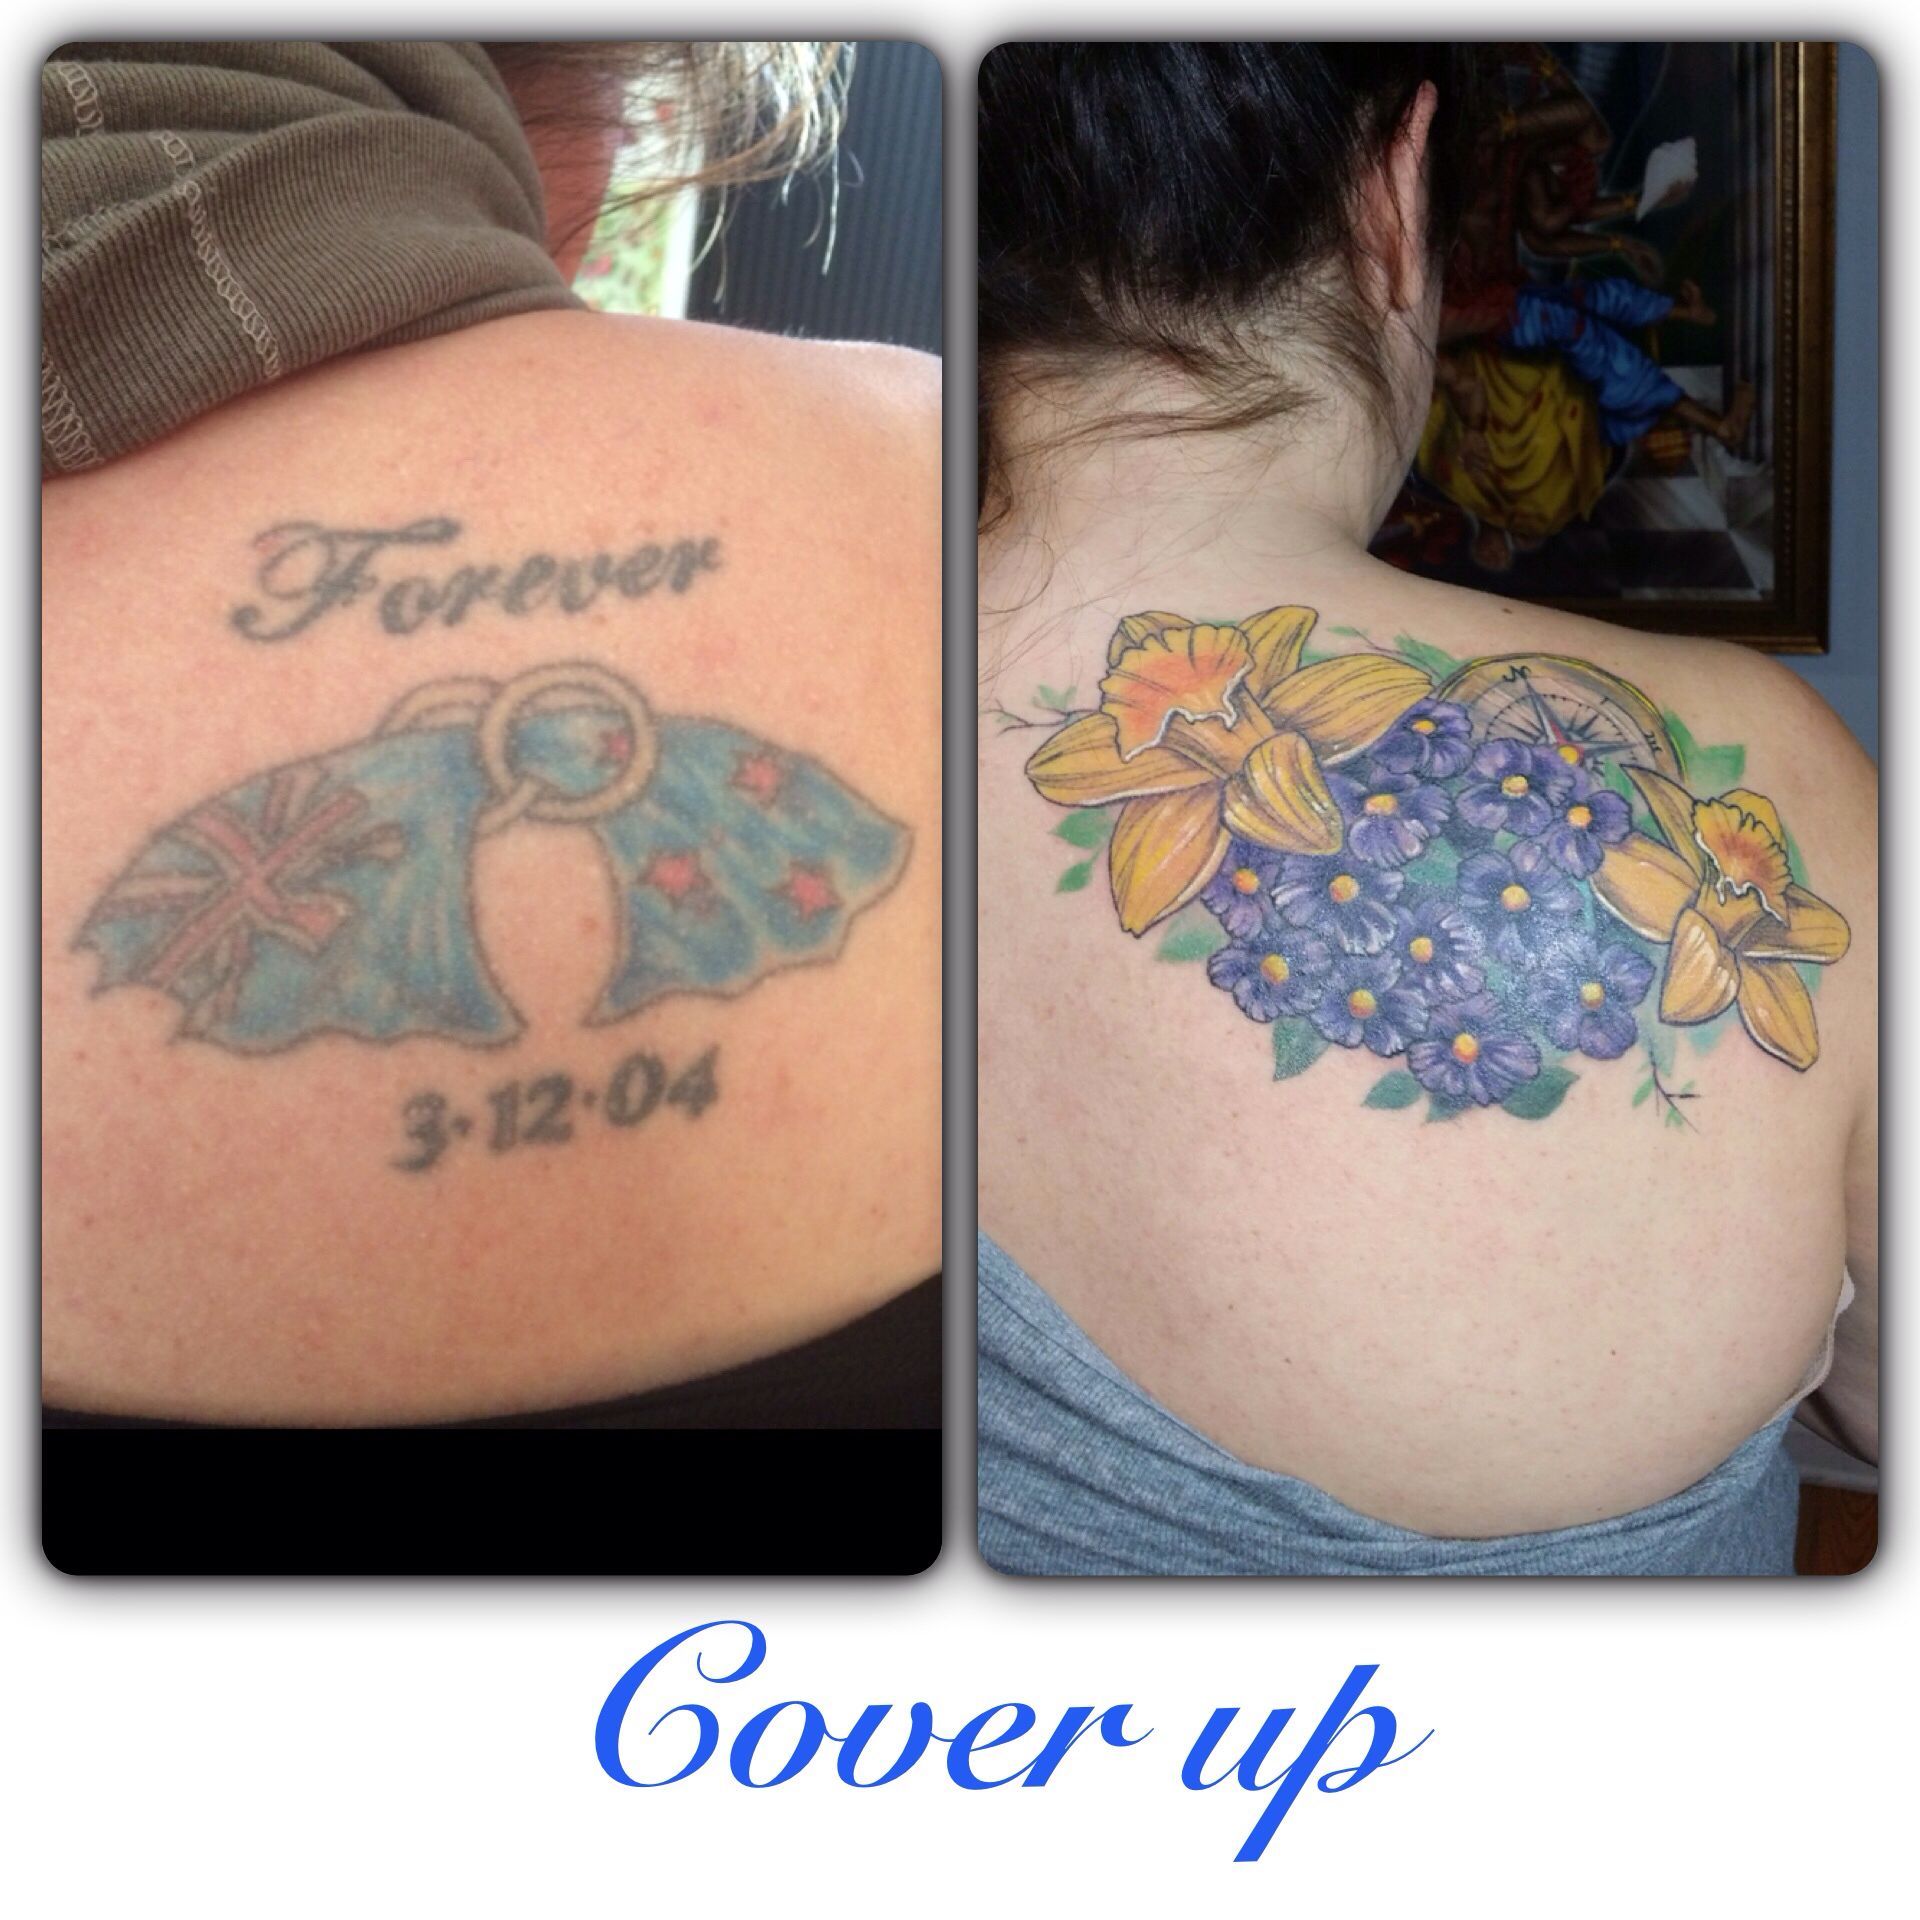 55 Cover Up Tattoos Impressive Before After Photos: Before And After Pictures Of A Cover-up Completely Healed